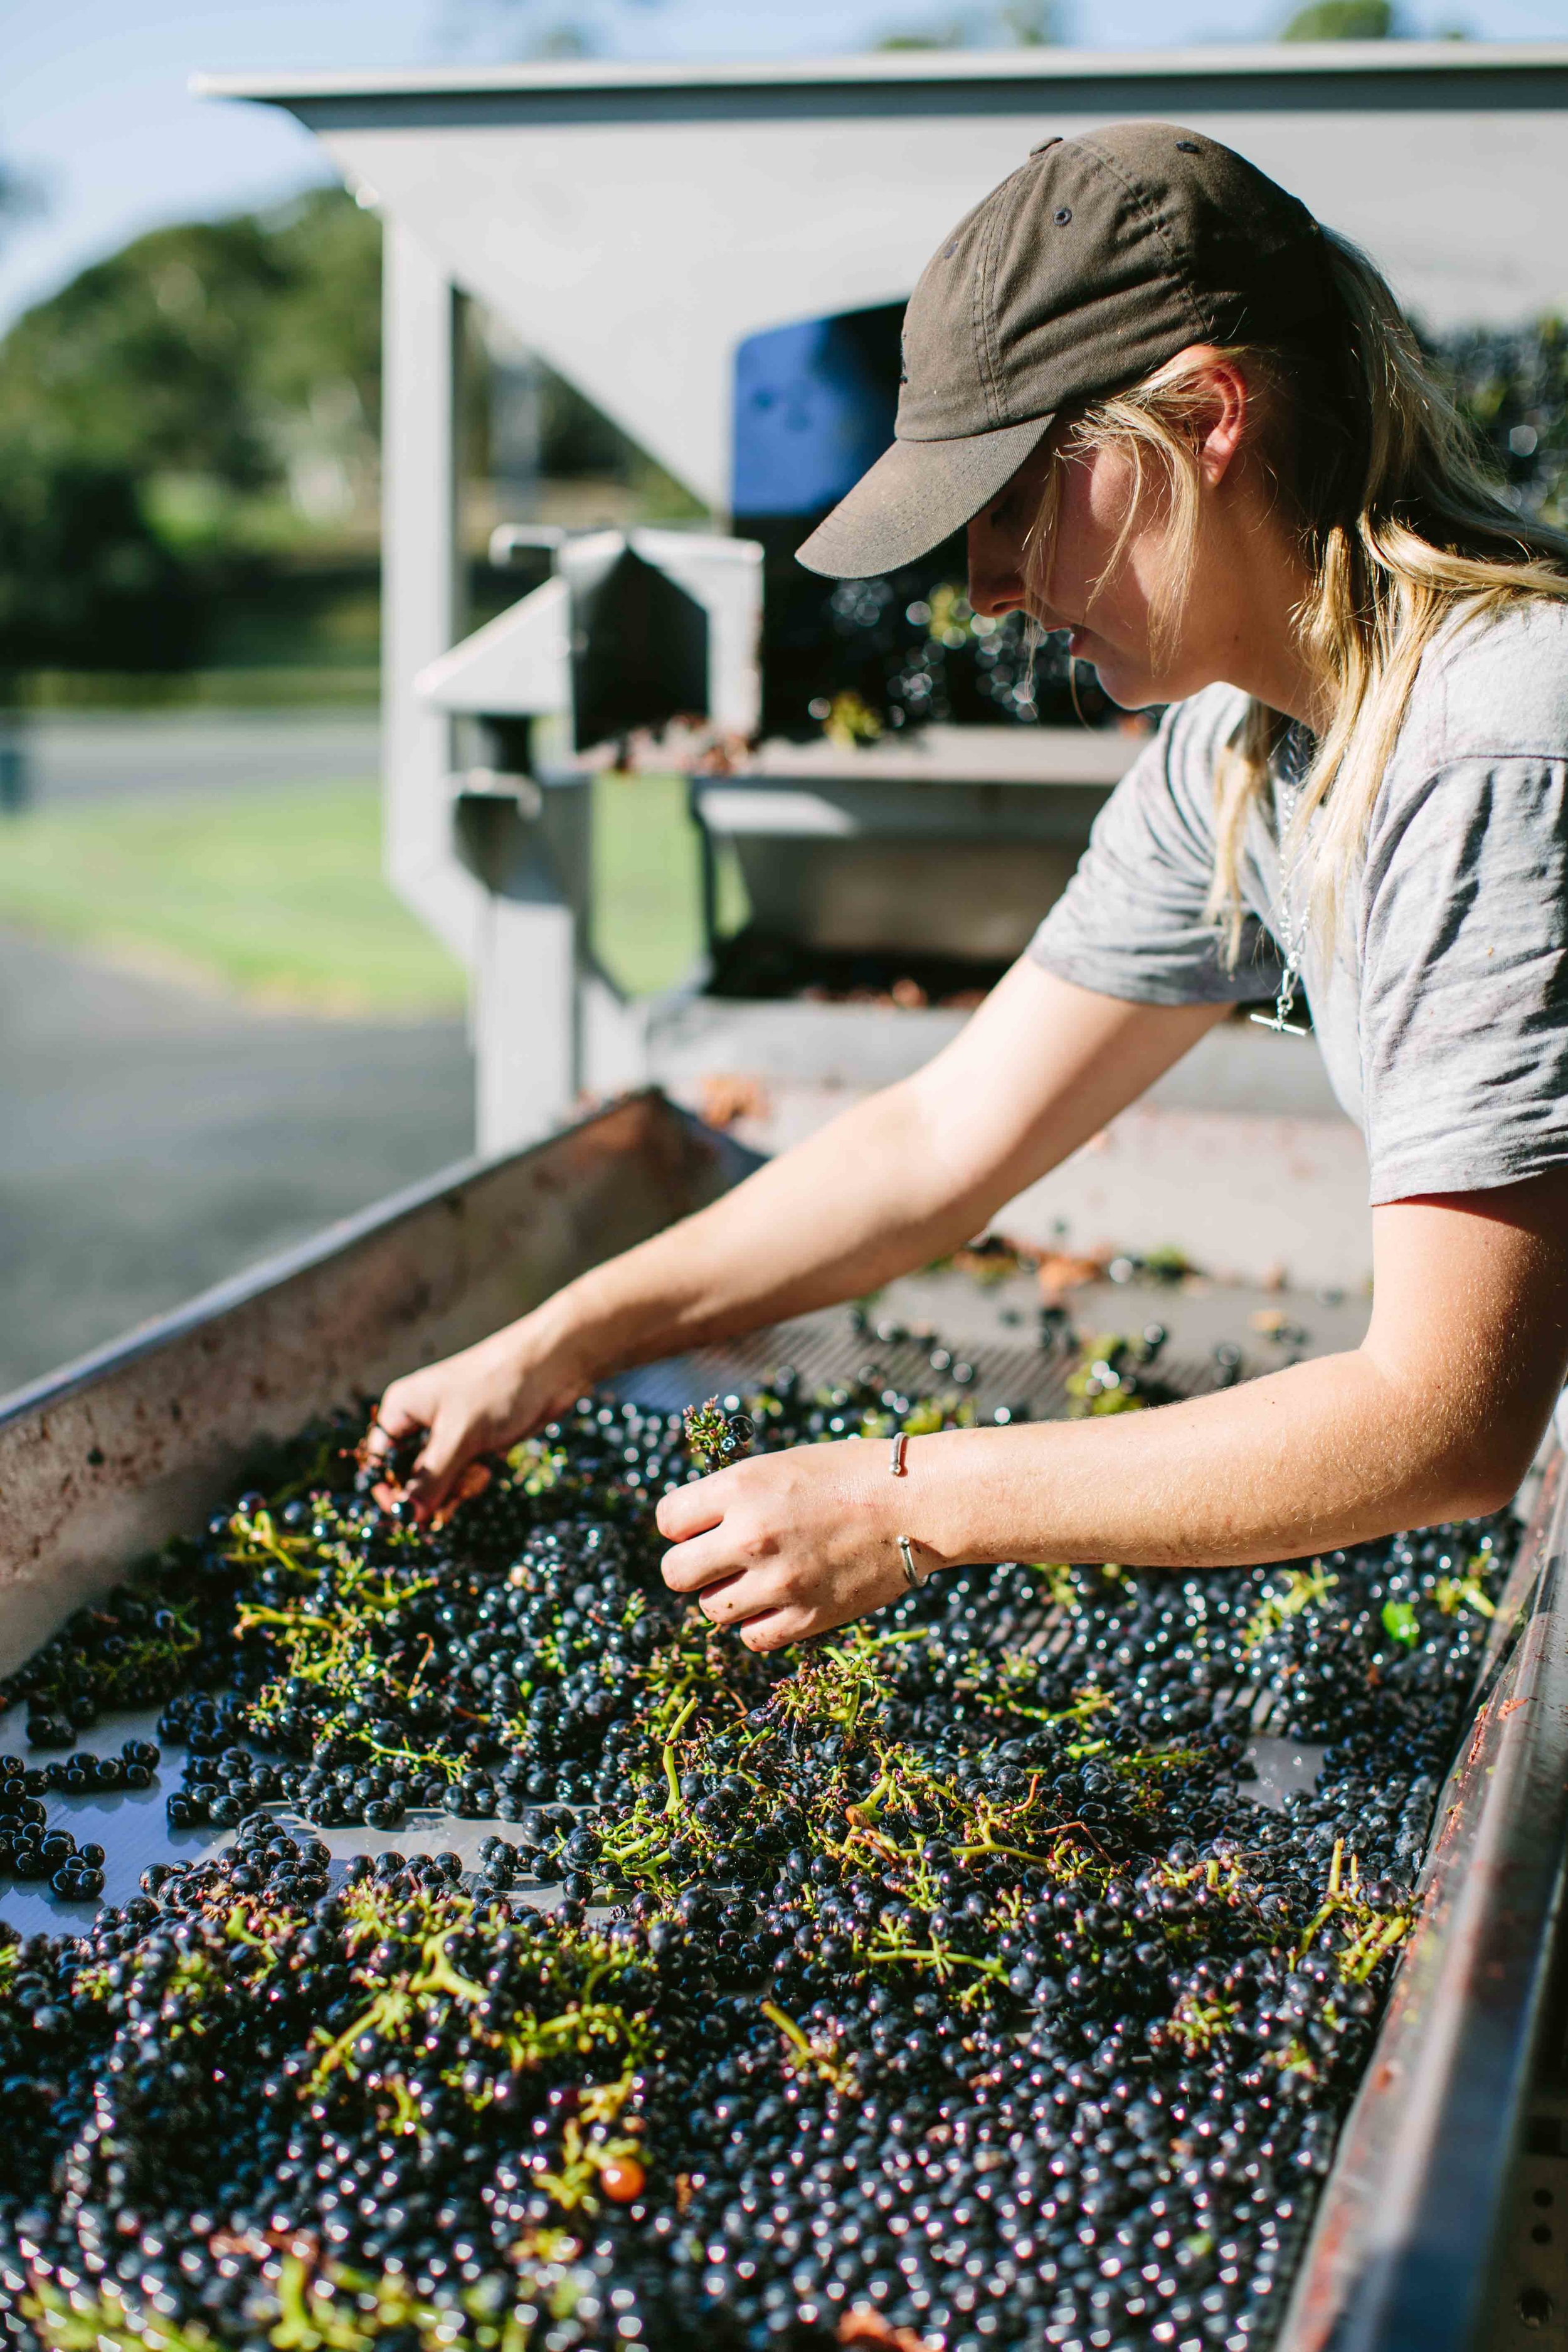 Unlike most present-day vineyards that utilise mechanised harvesting, all grapes continue to be hand-picked in the pursuit of quality.